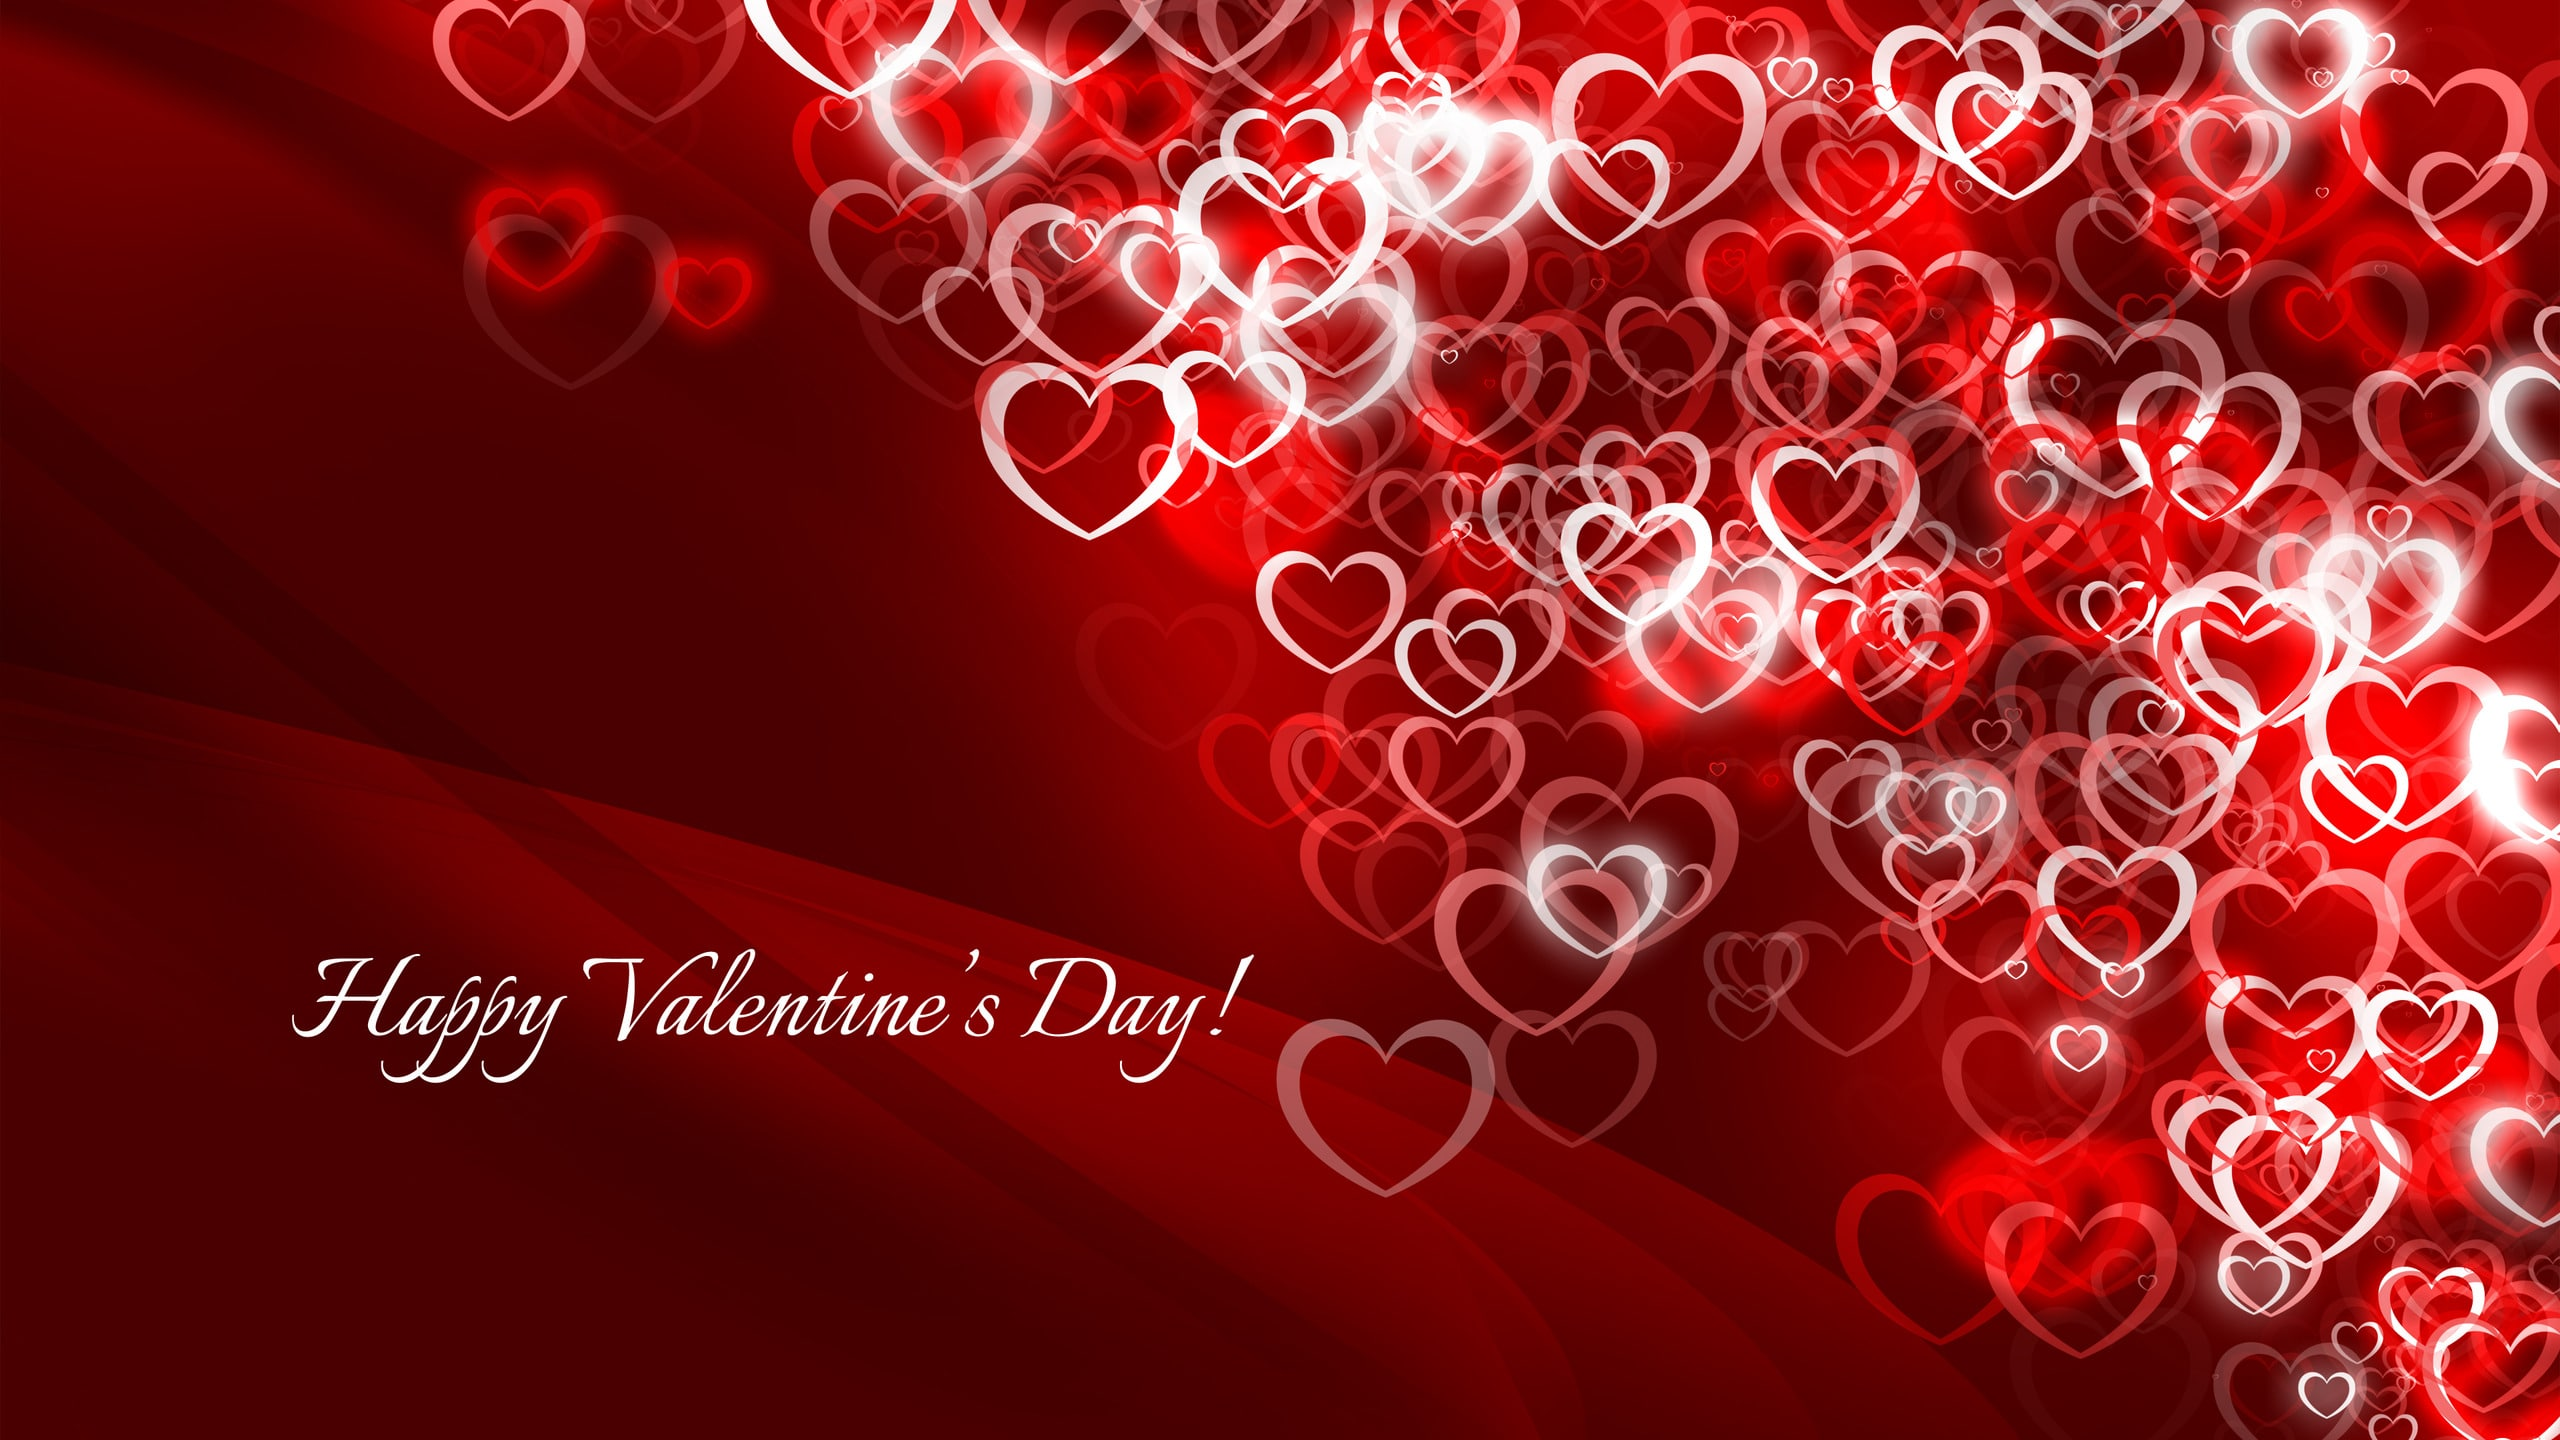 Happy Valentine's Day HD Images and wallpaper